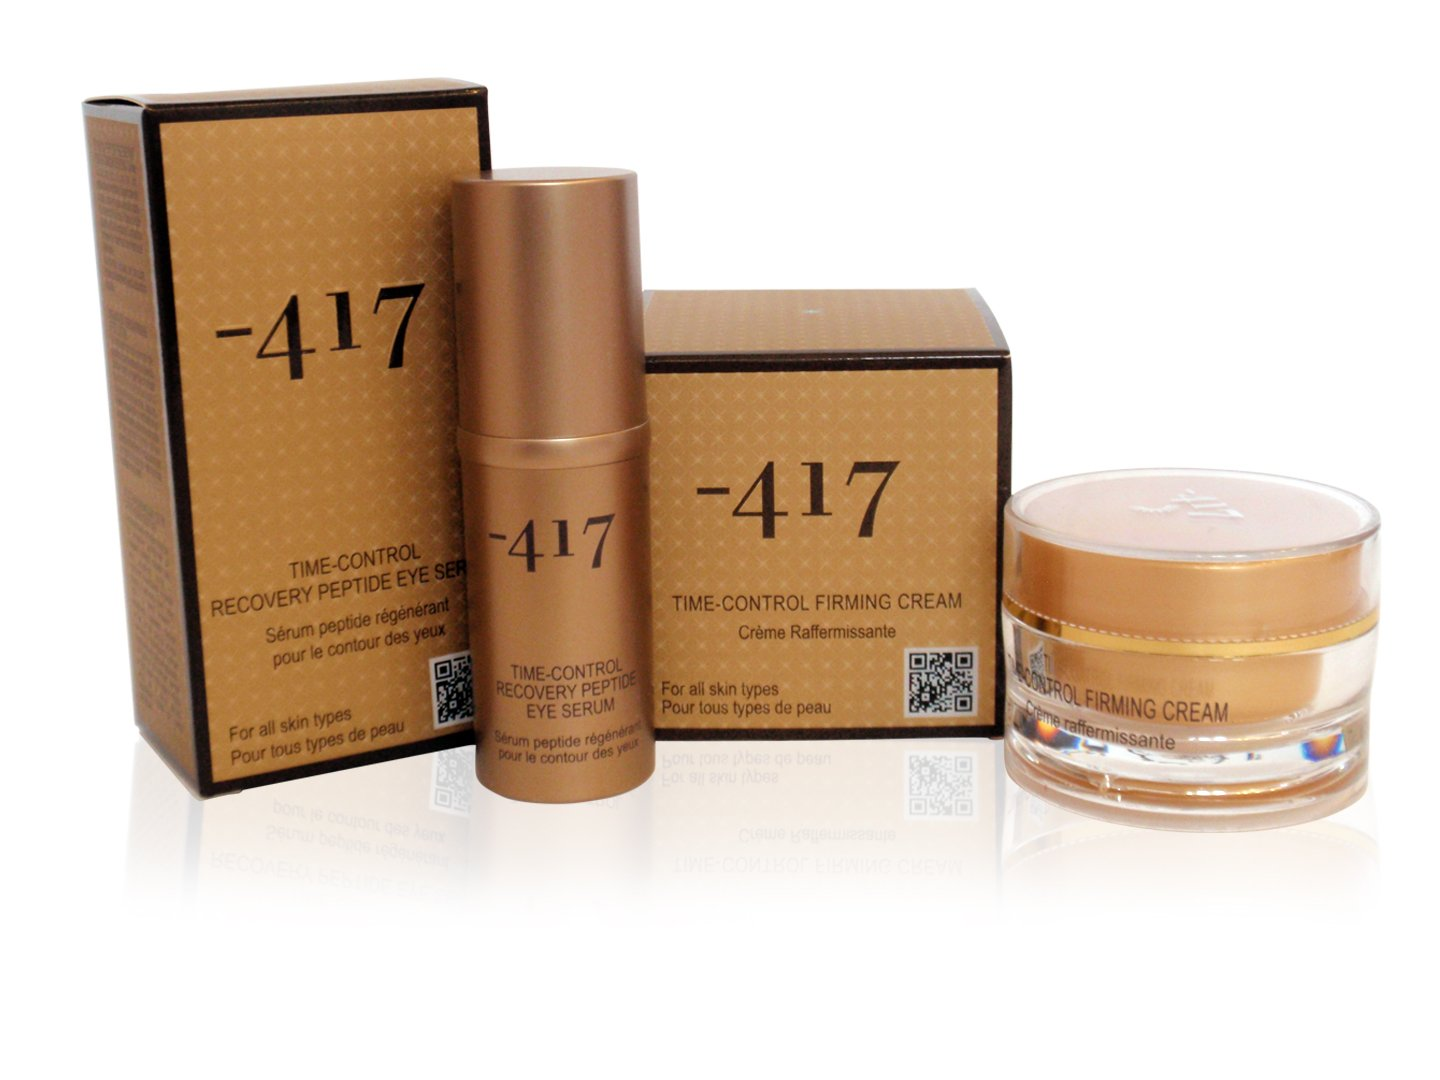 Minus -417 Dead Sea Cosmetics - Recovery Peptide Eye Serum daniel hotel dead sea ex golden tulip dead sea 5 мертвое море